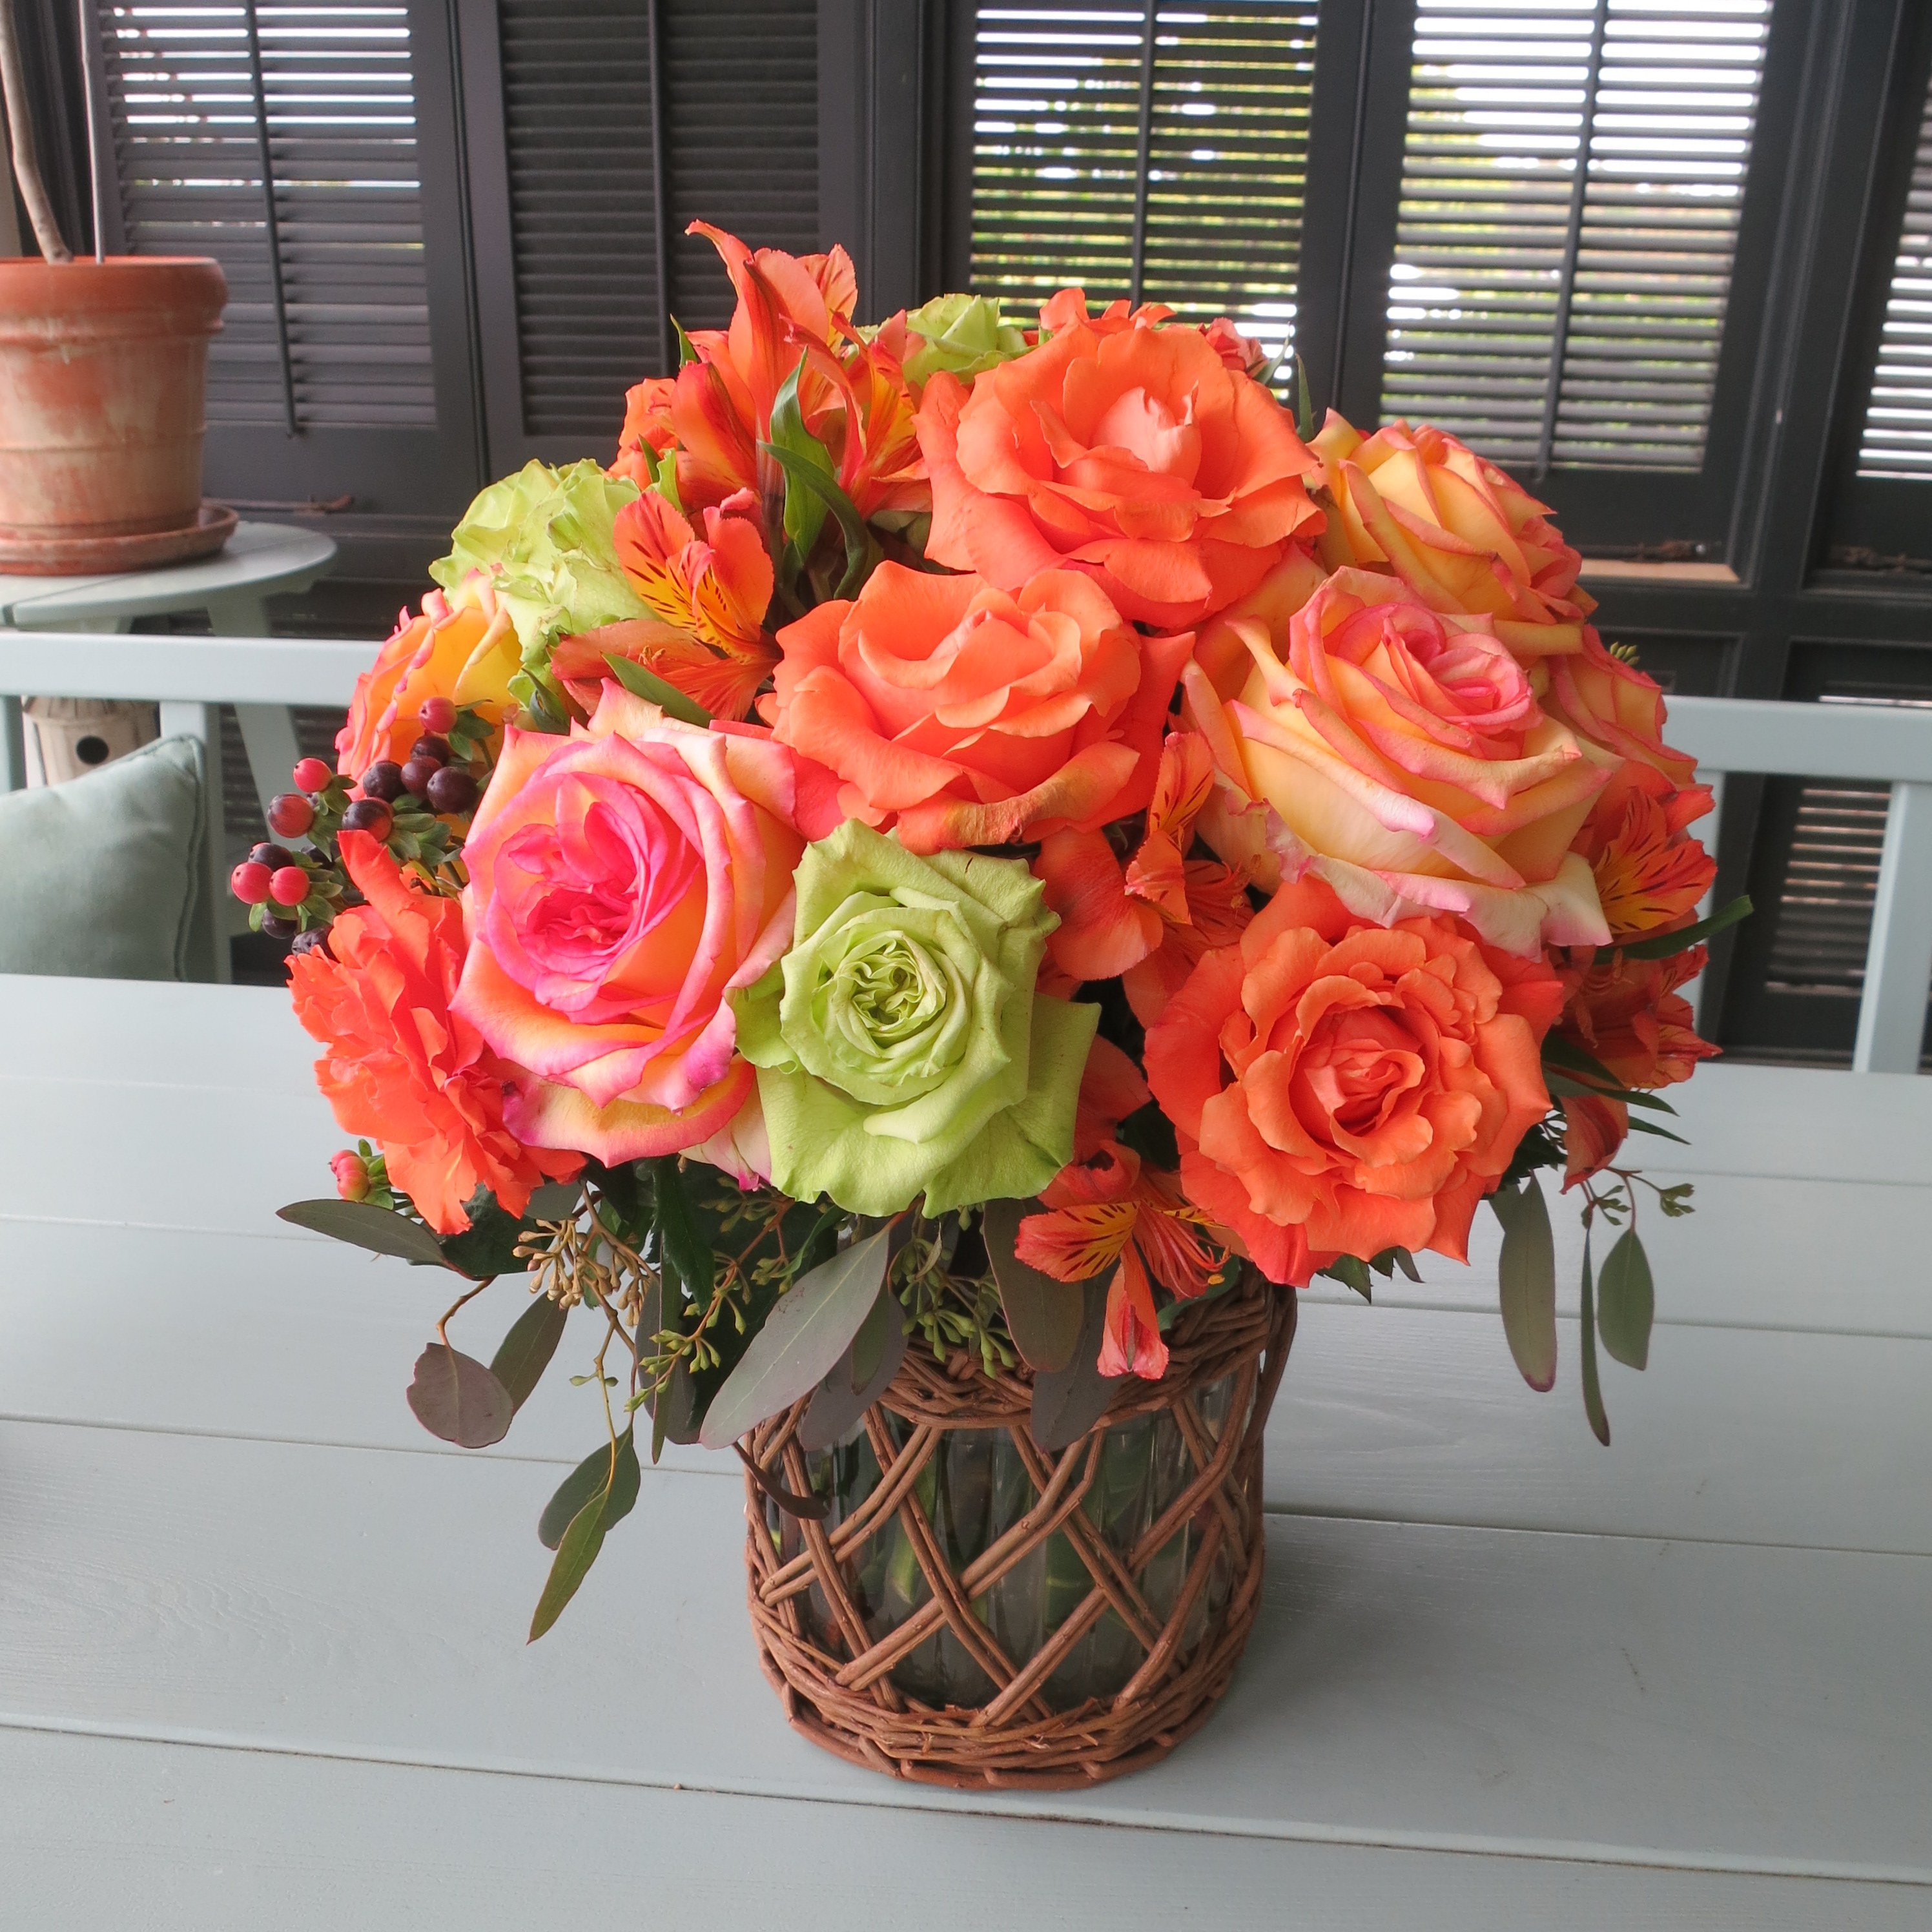 Photo of a bouquet of coral roses in a round vase